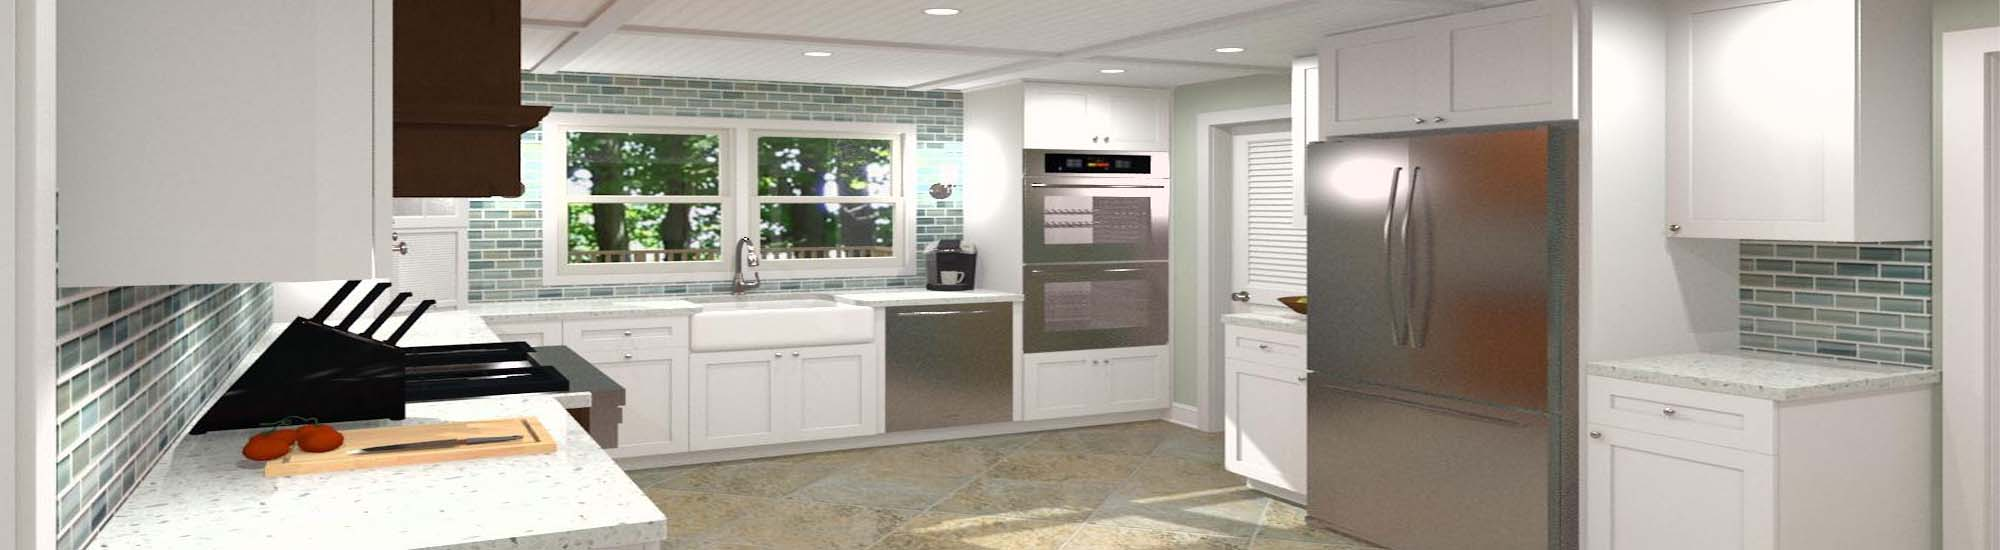 kitchen-cad-1-design-build-pros